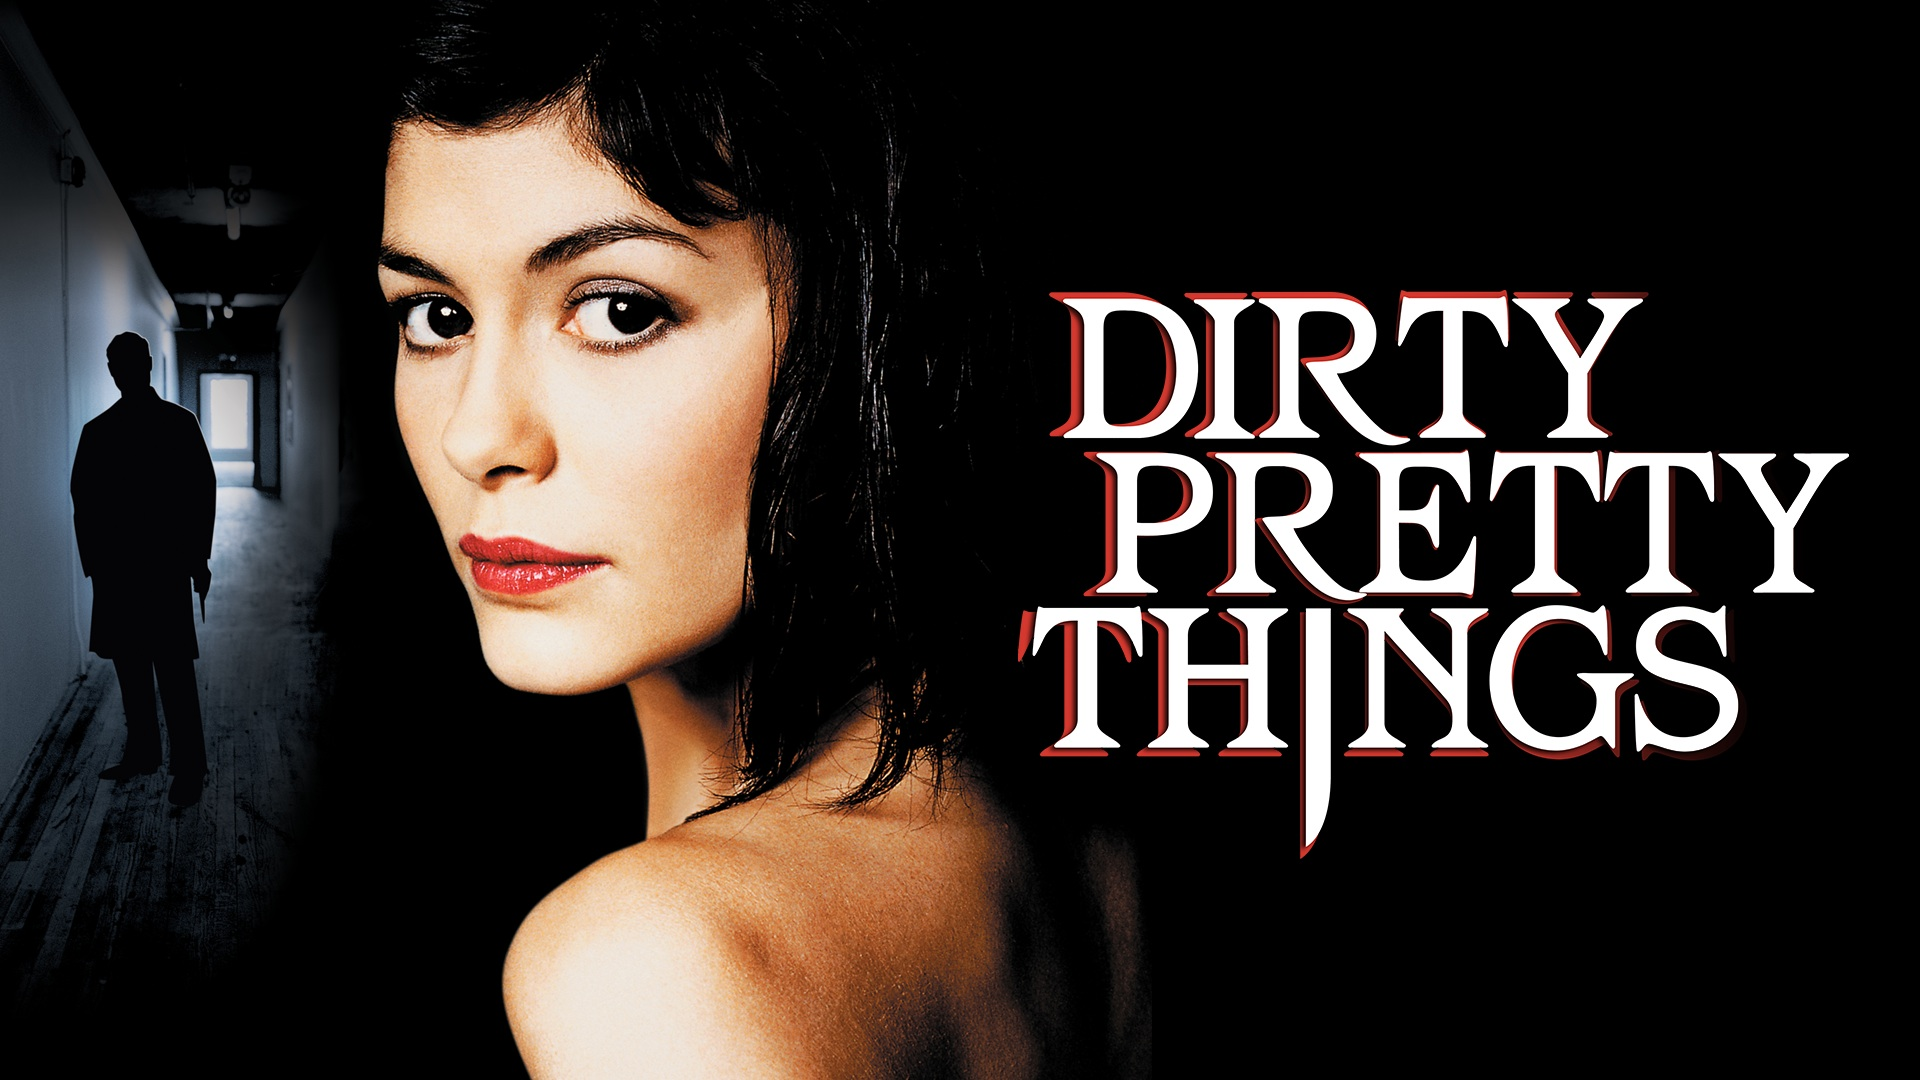 Dirty Pretty Things - Official Trailer (HD)